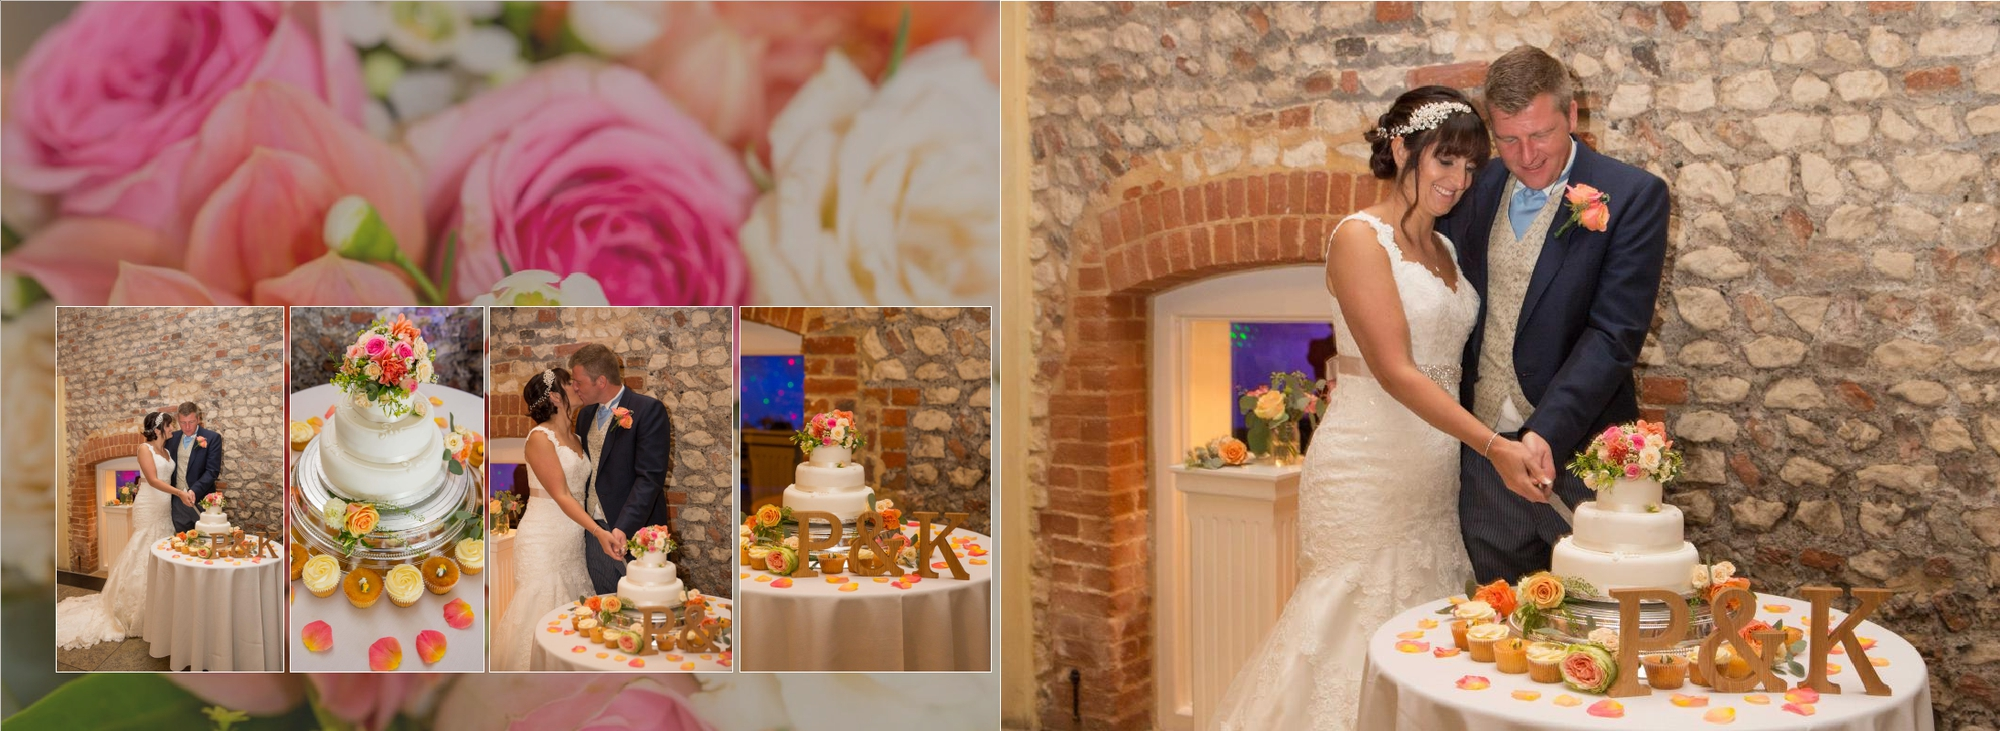 cake cutting photography farbridge wedding venue